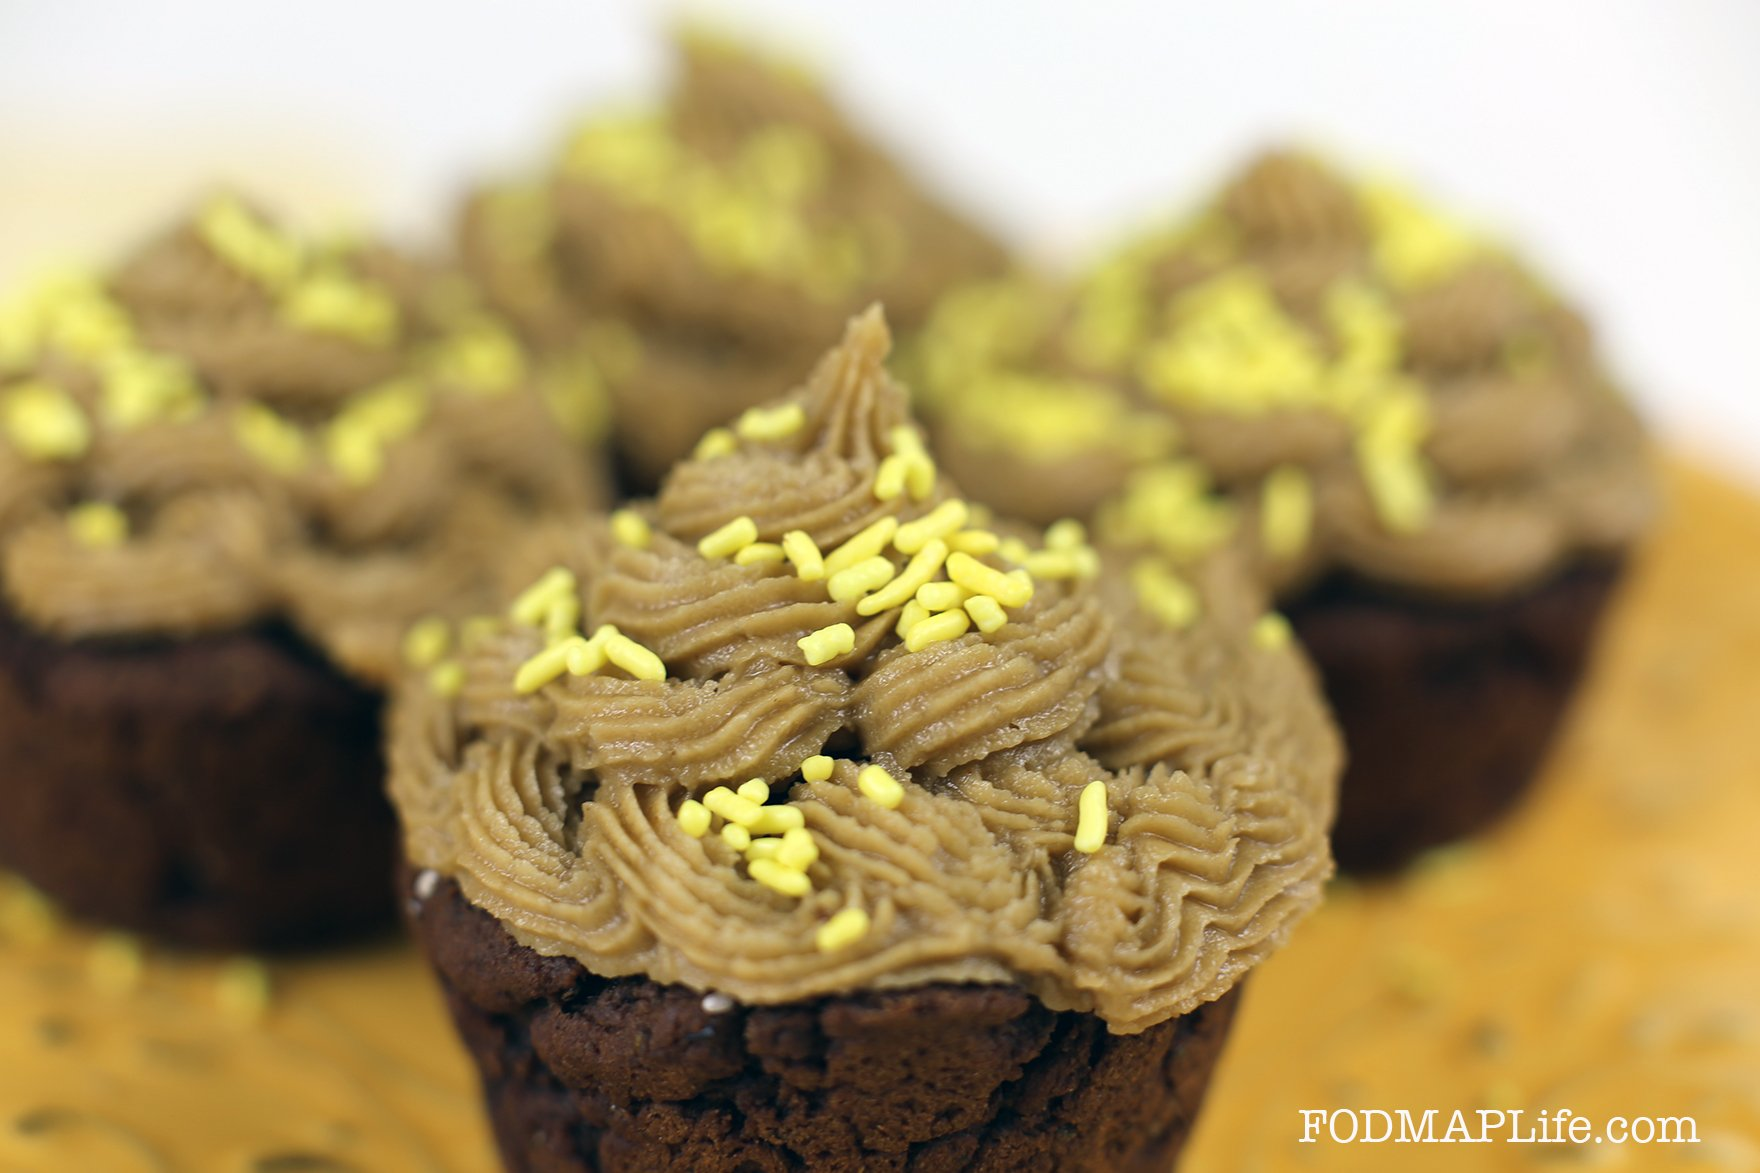 FODMAP Life Recipe Challenge: Chocolate Teff Chia Cupcakes